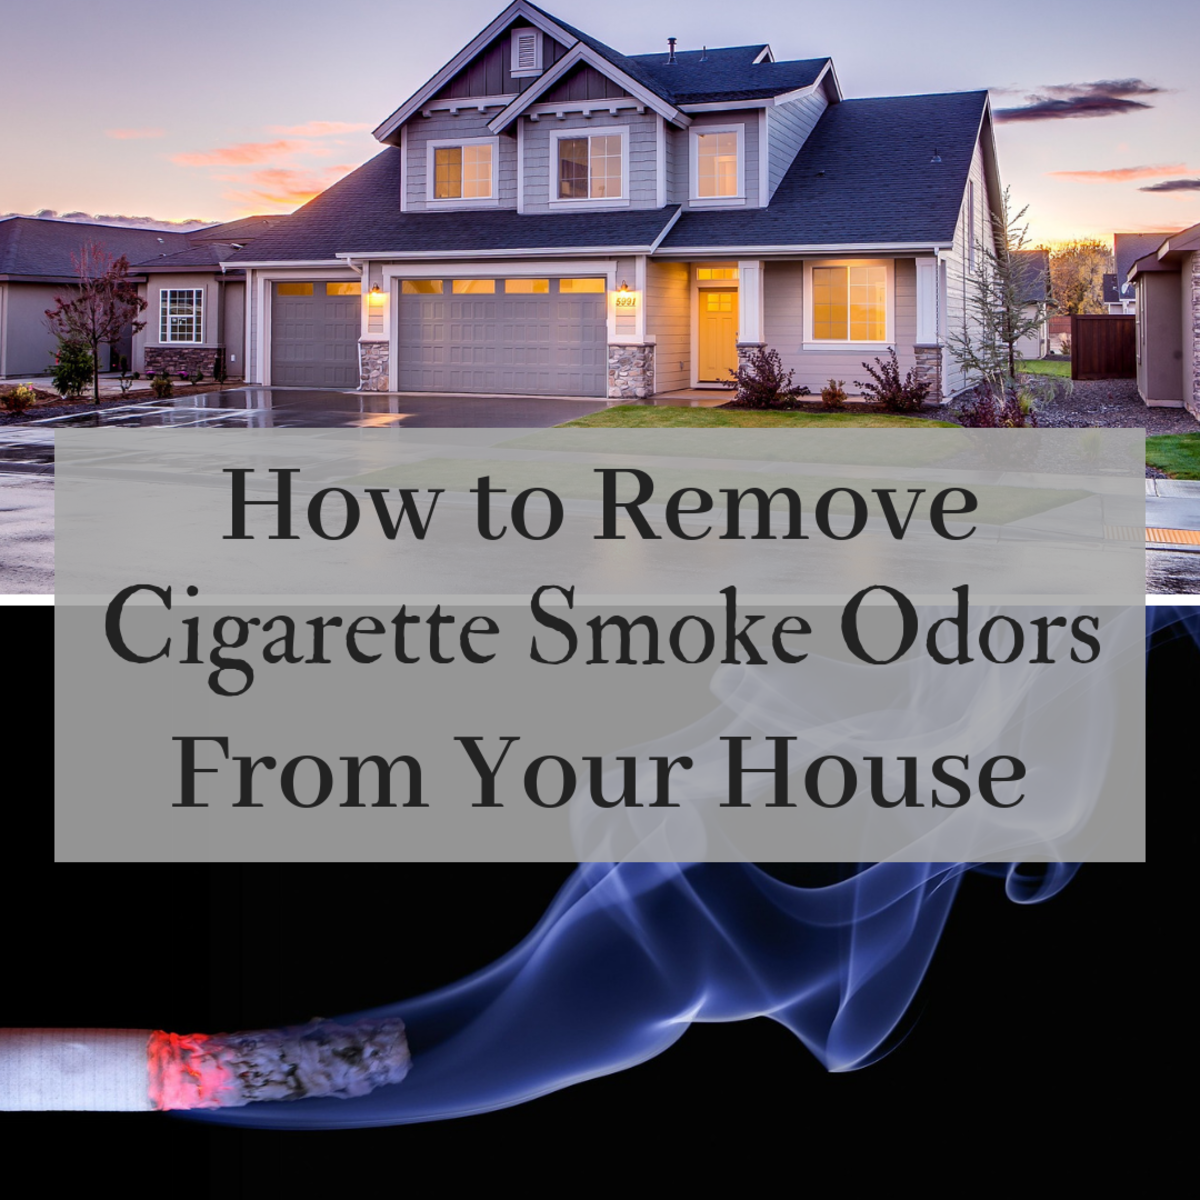 How to Get the Cigarette Smoke Smell Out of Your House: A Step-by-Step Guide